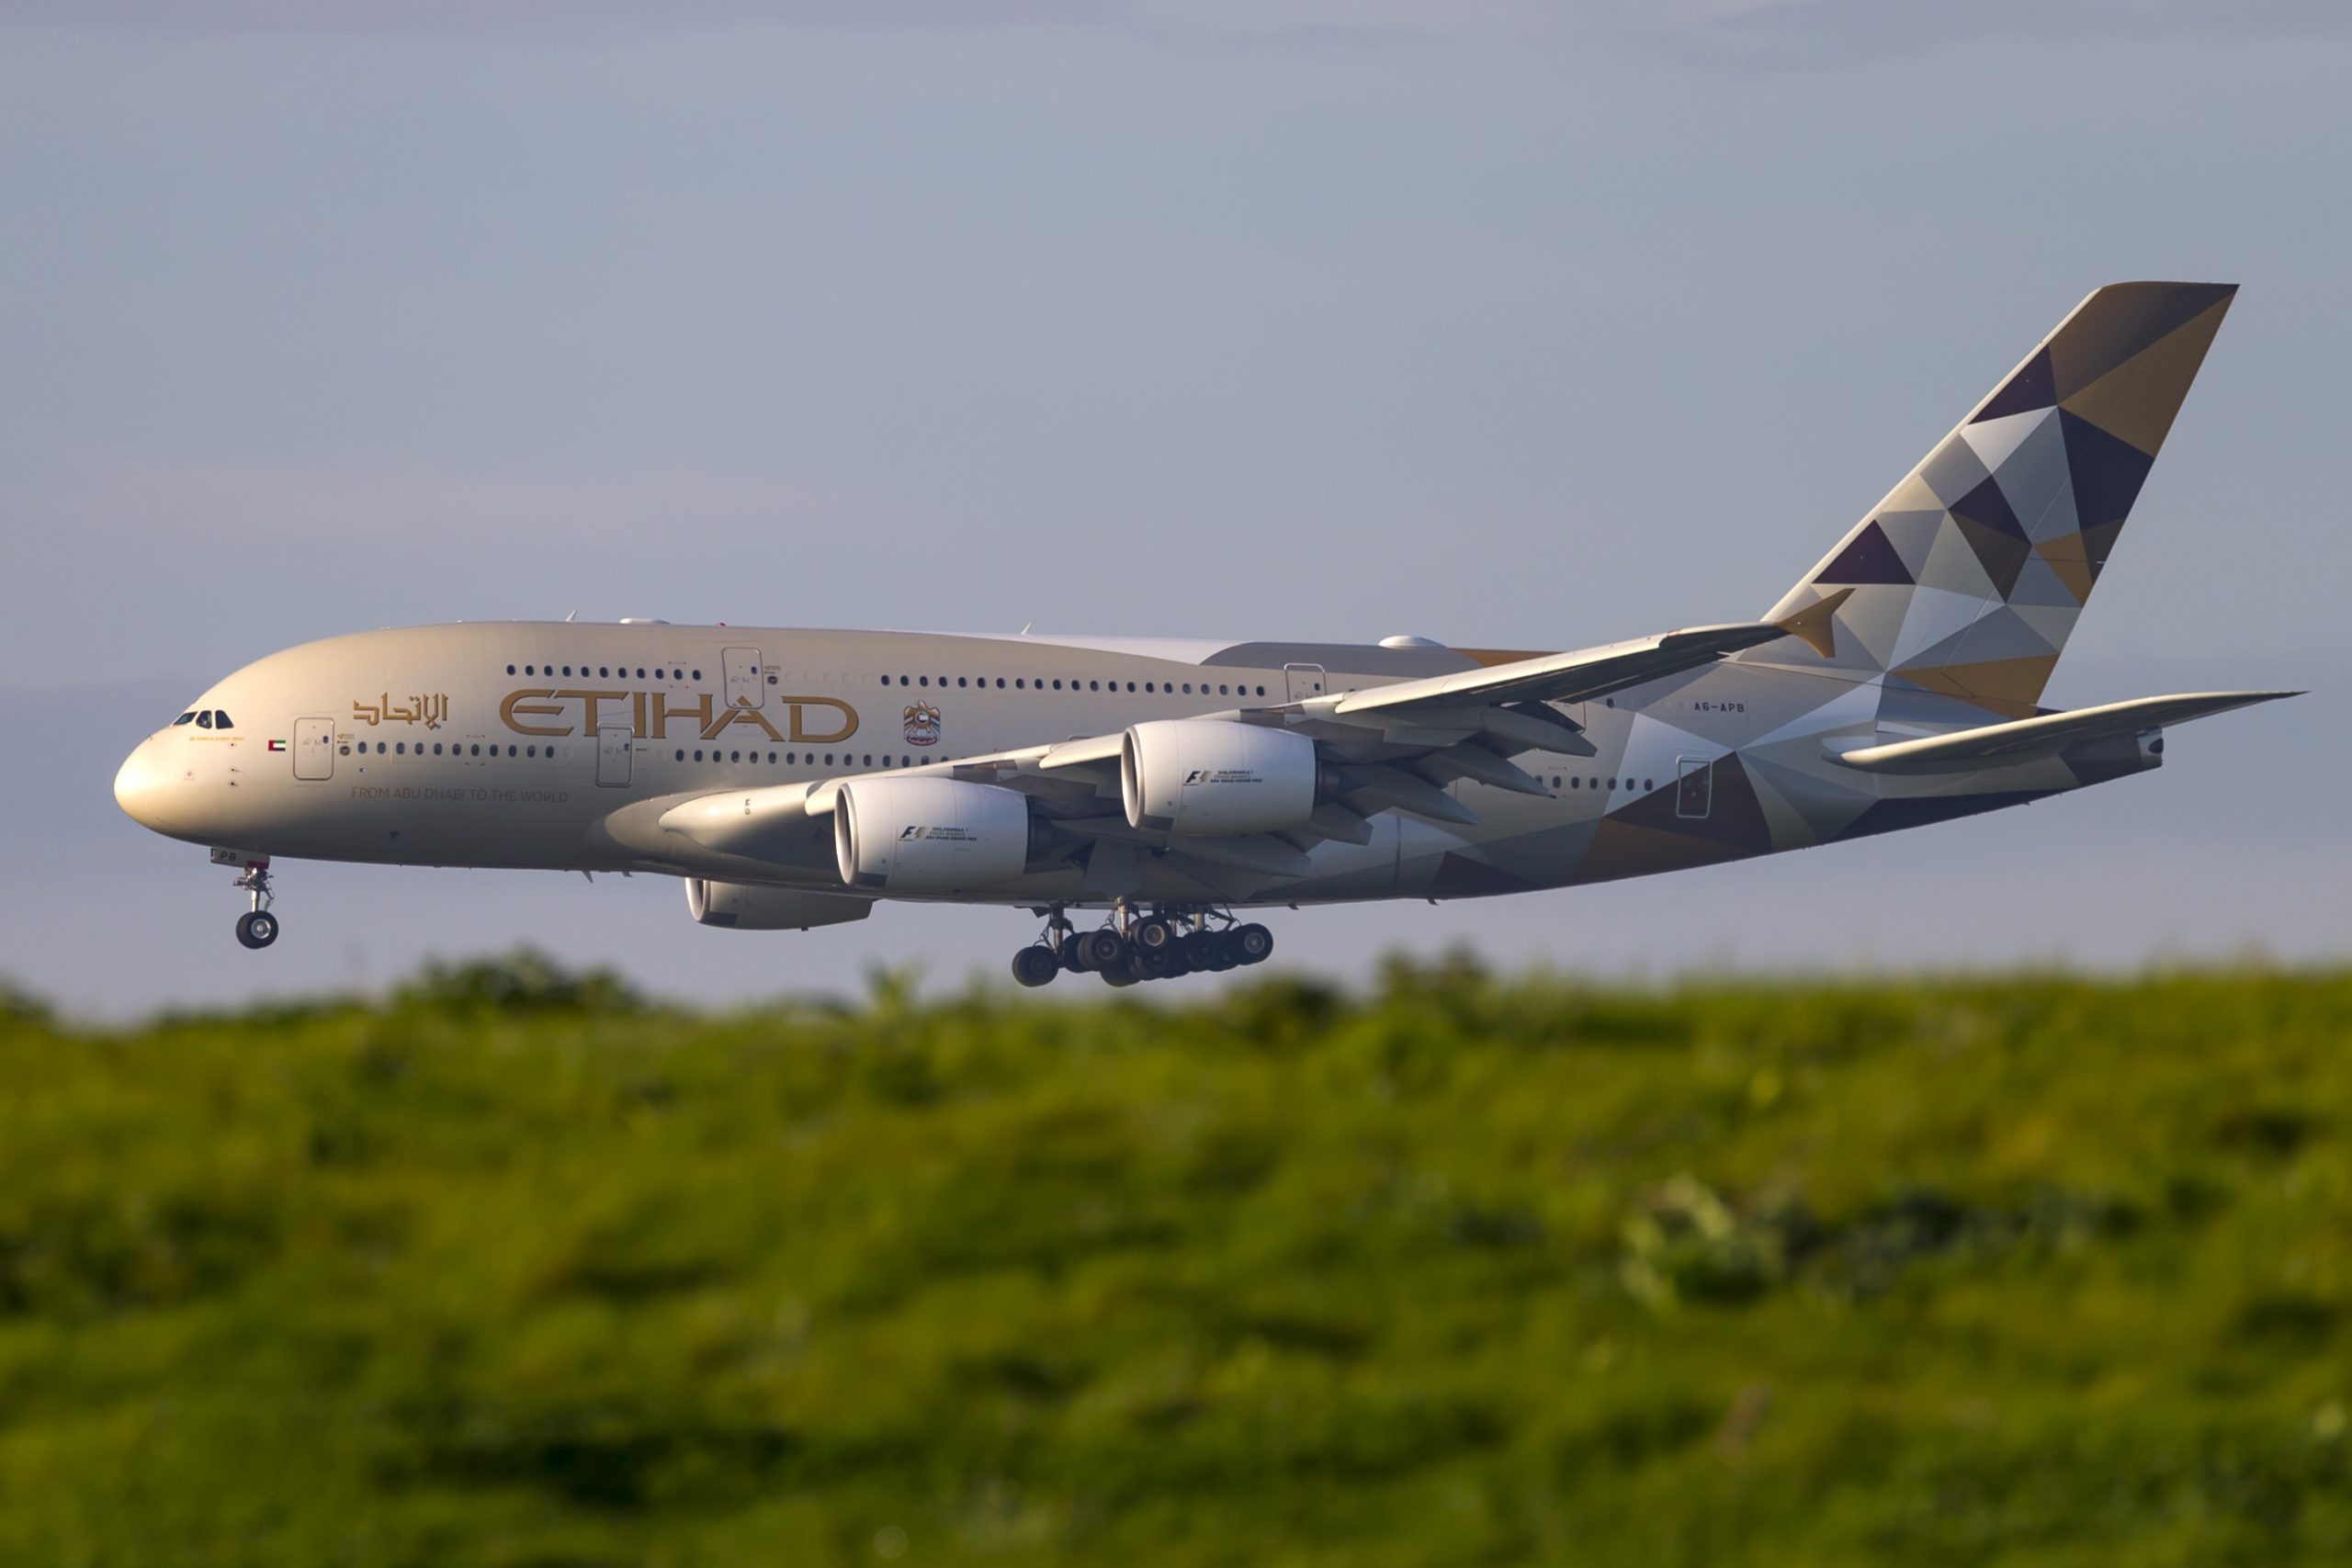 En Airbus A380-800 fra Etihad Airways. Foto: © Thorbjørn Brunander Sund, Danish Aviation Photo